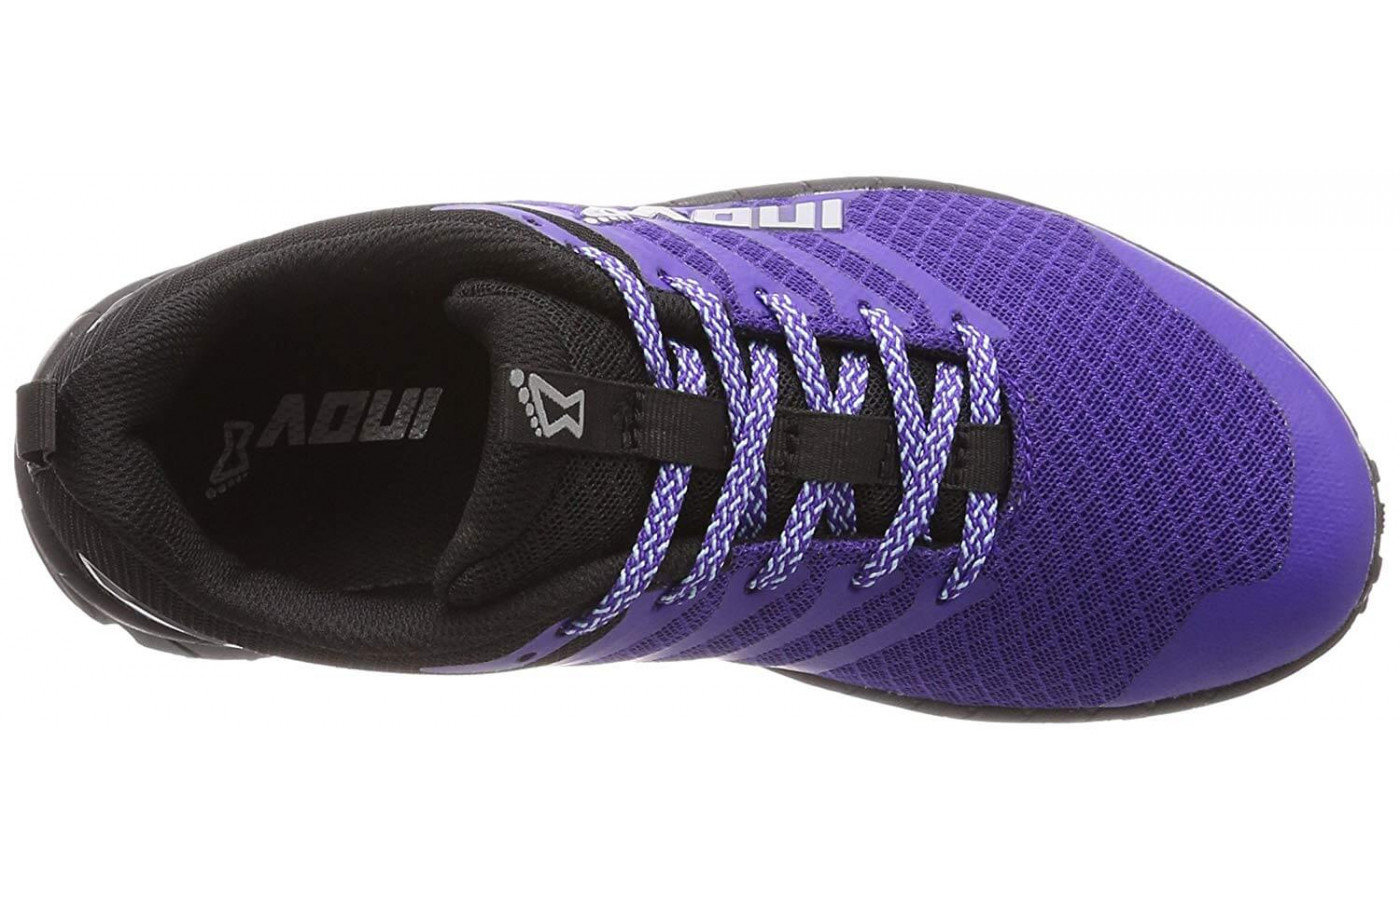 The Parkclaw 275's Protective Mesh upper shields the foot from trail debris